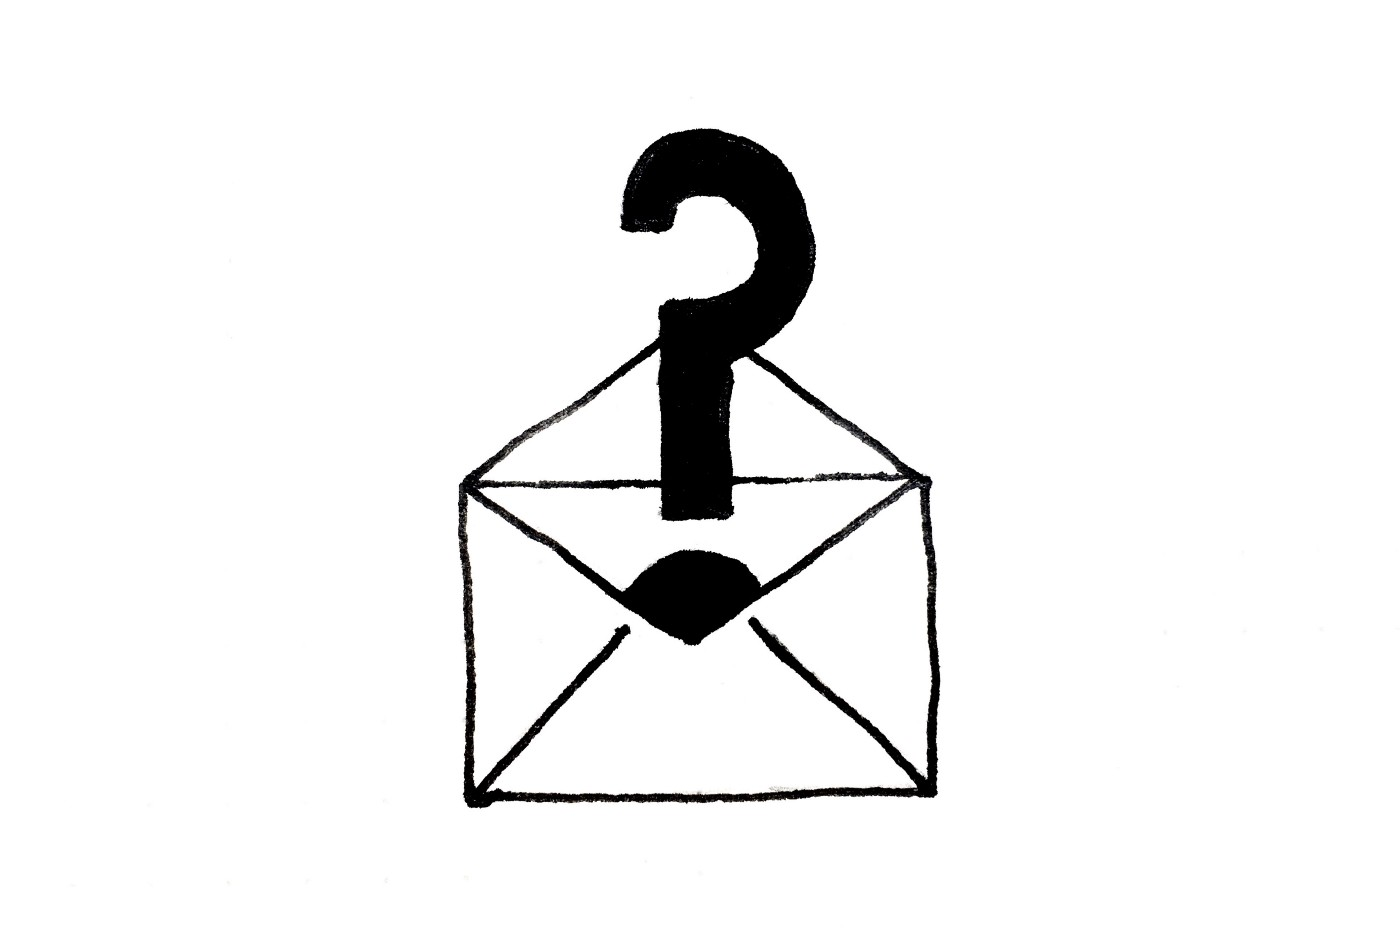 A question mark coming out of an opened email letter